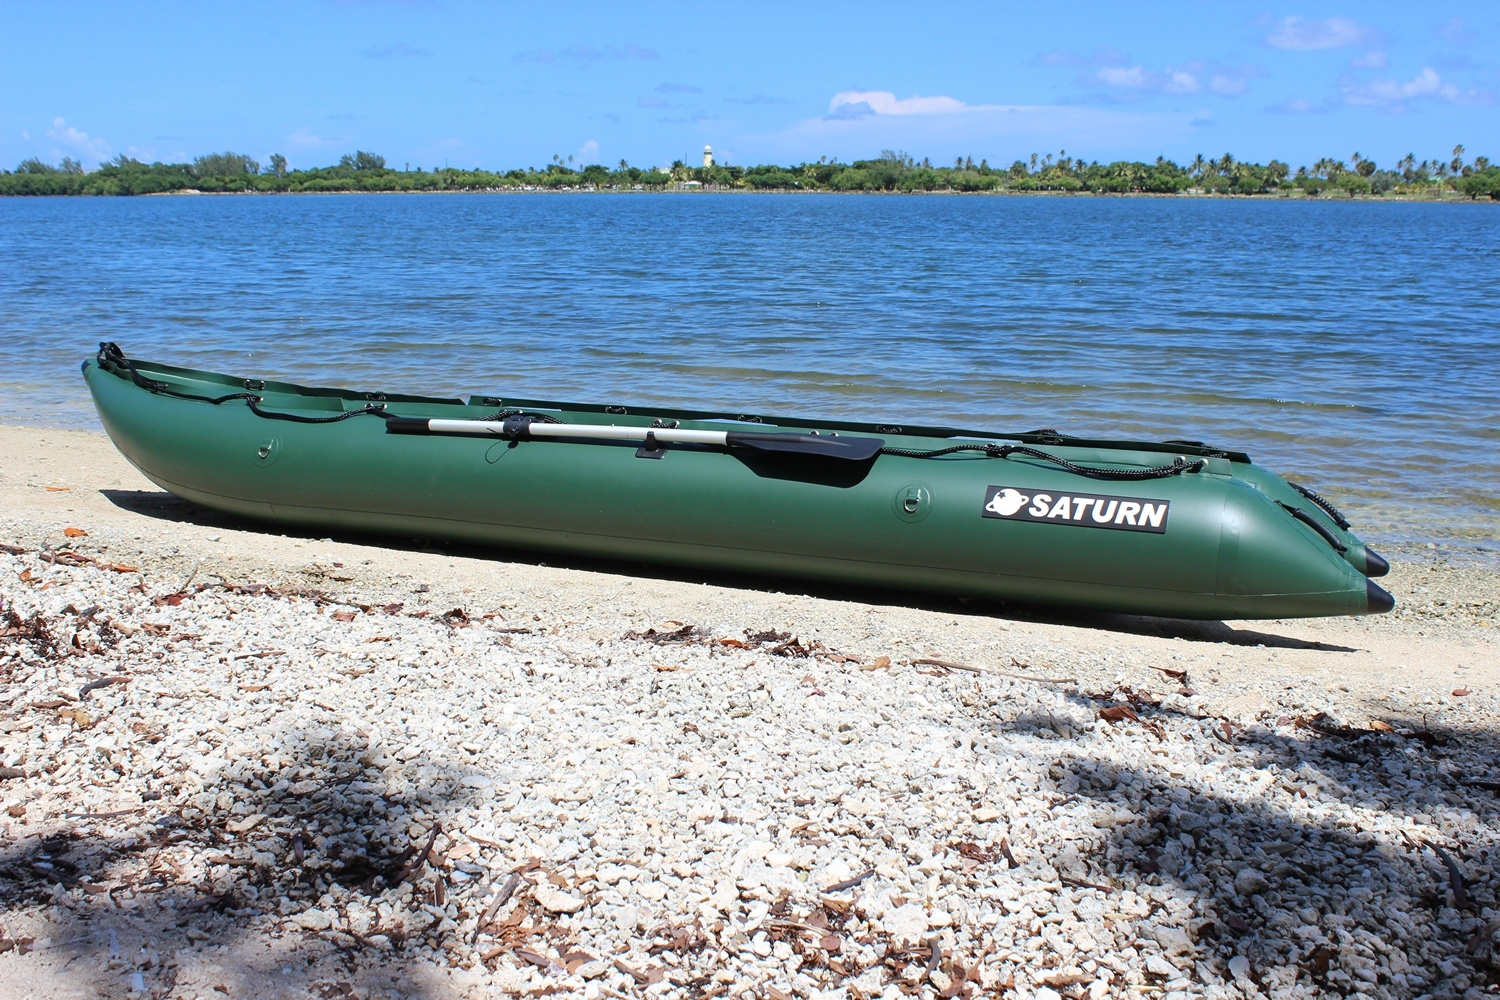 14ft saturn inflatable crossover kayak boat kaboat sk430 3 for 3 person fishing boat